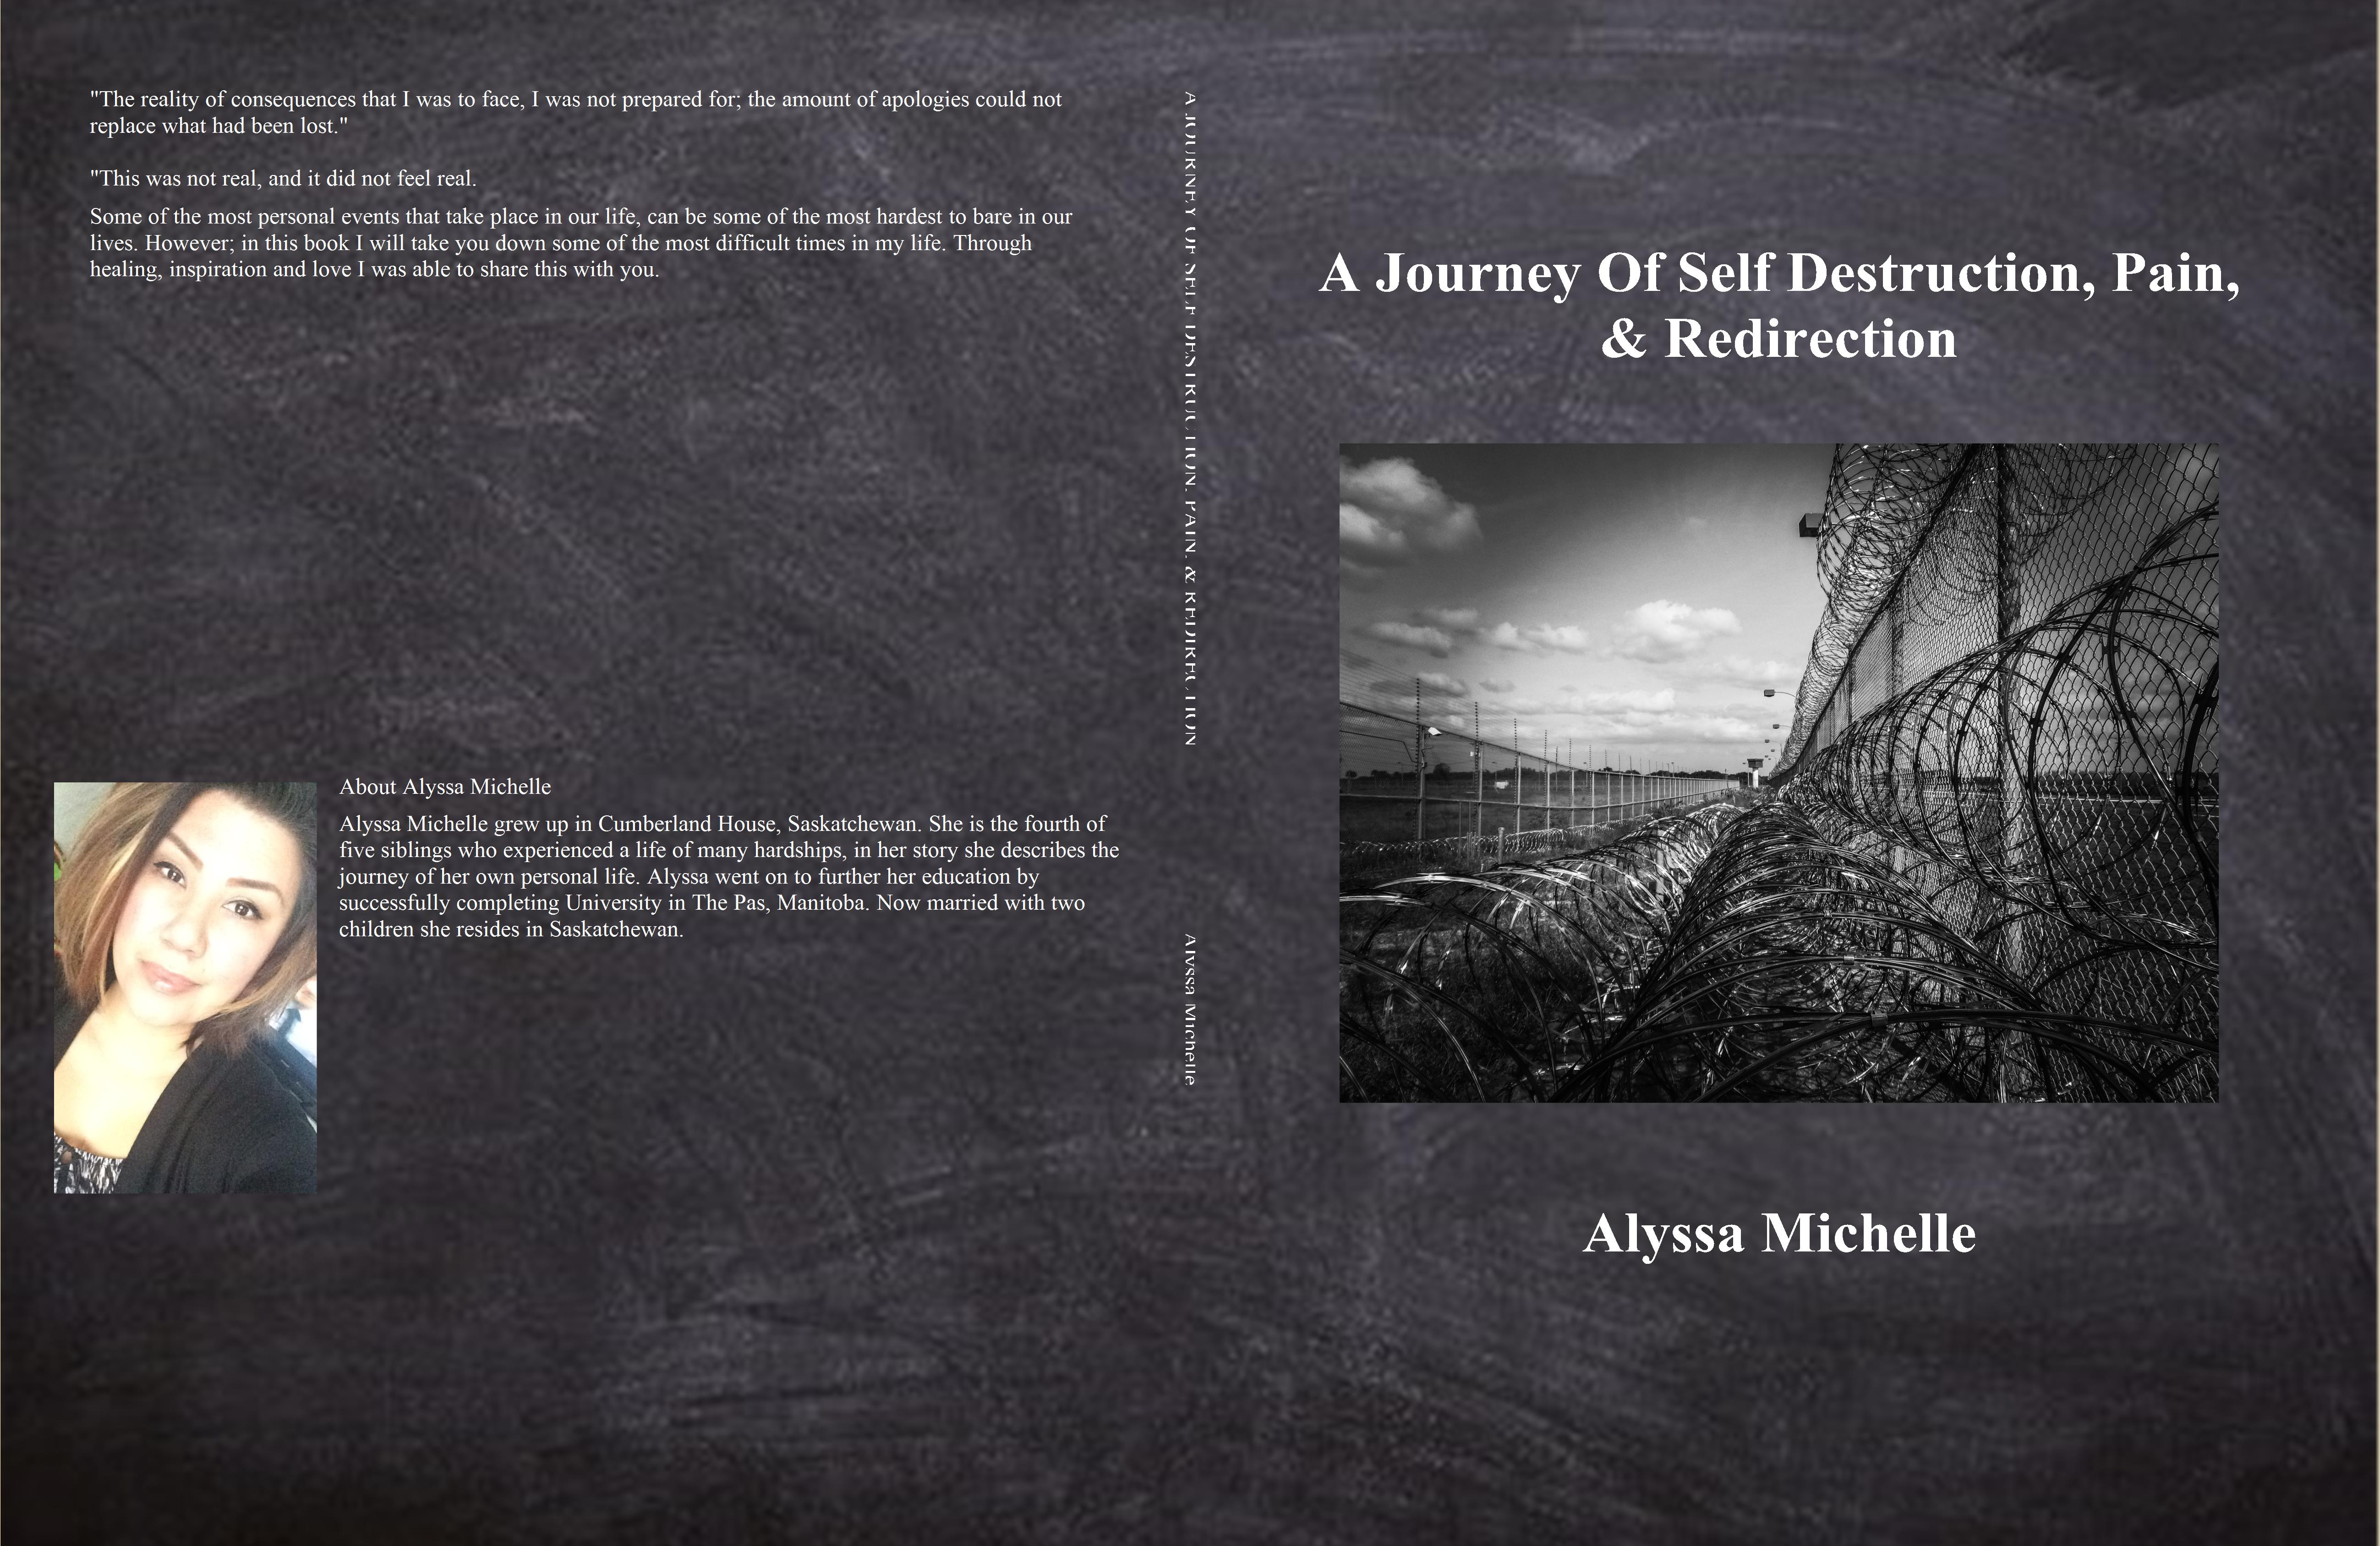 A Journey Of Self Destruction, Pain, & Redirection cover image